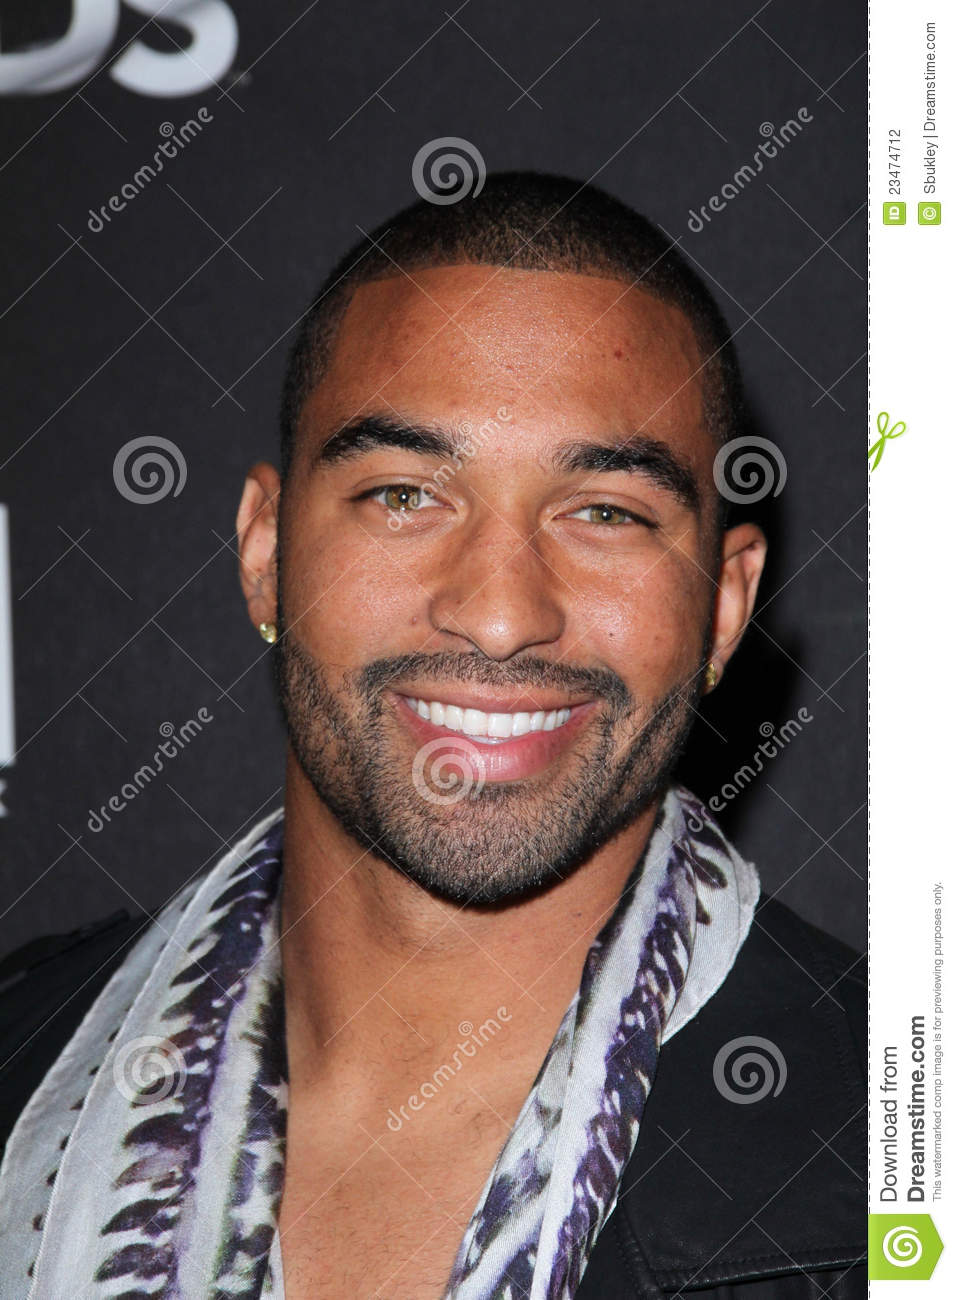 matt kemp Matthew ryan matt kemp (born september 23, 1984) is a major league baseball (mlb) outfielder for the los angeles dodgers kemp was drafted by the dodgers in the sixth round of the 2003 mlb draft.